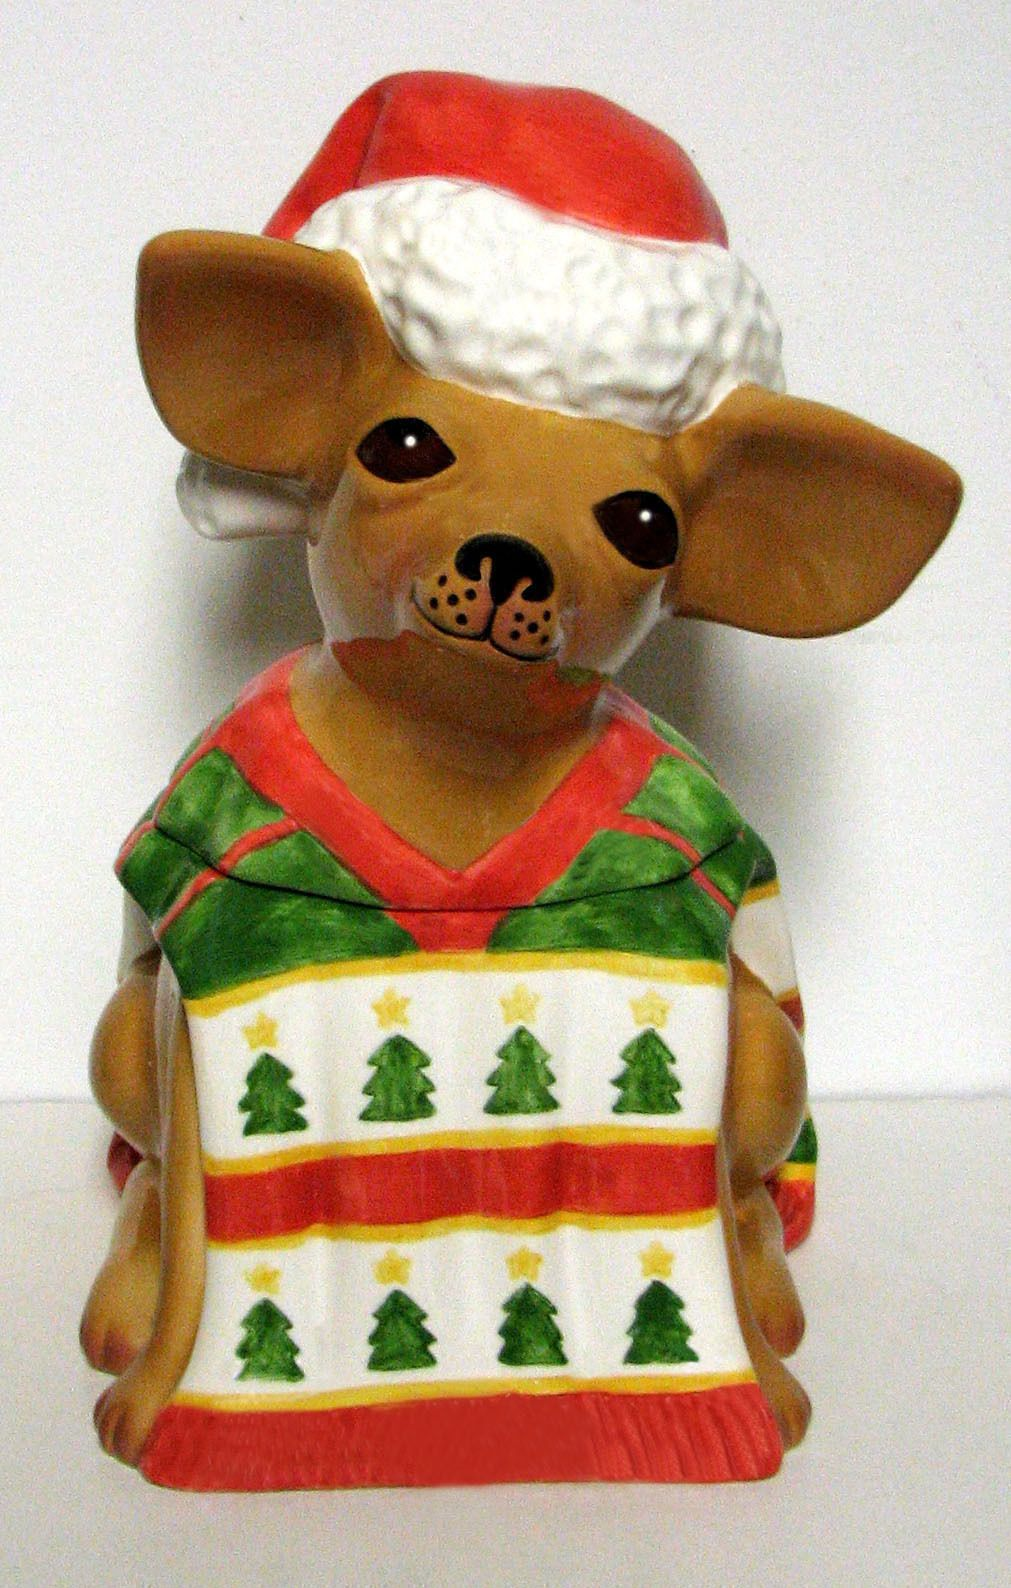 Chihuahua Cookie Jar Unique Rare Santa Chihuahua Clay Art Cookie Jar  Cookie Jars Jar And Santa